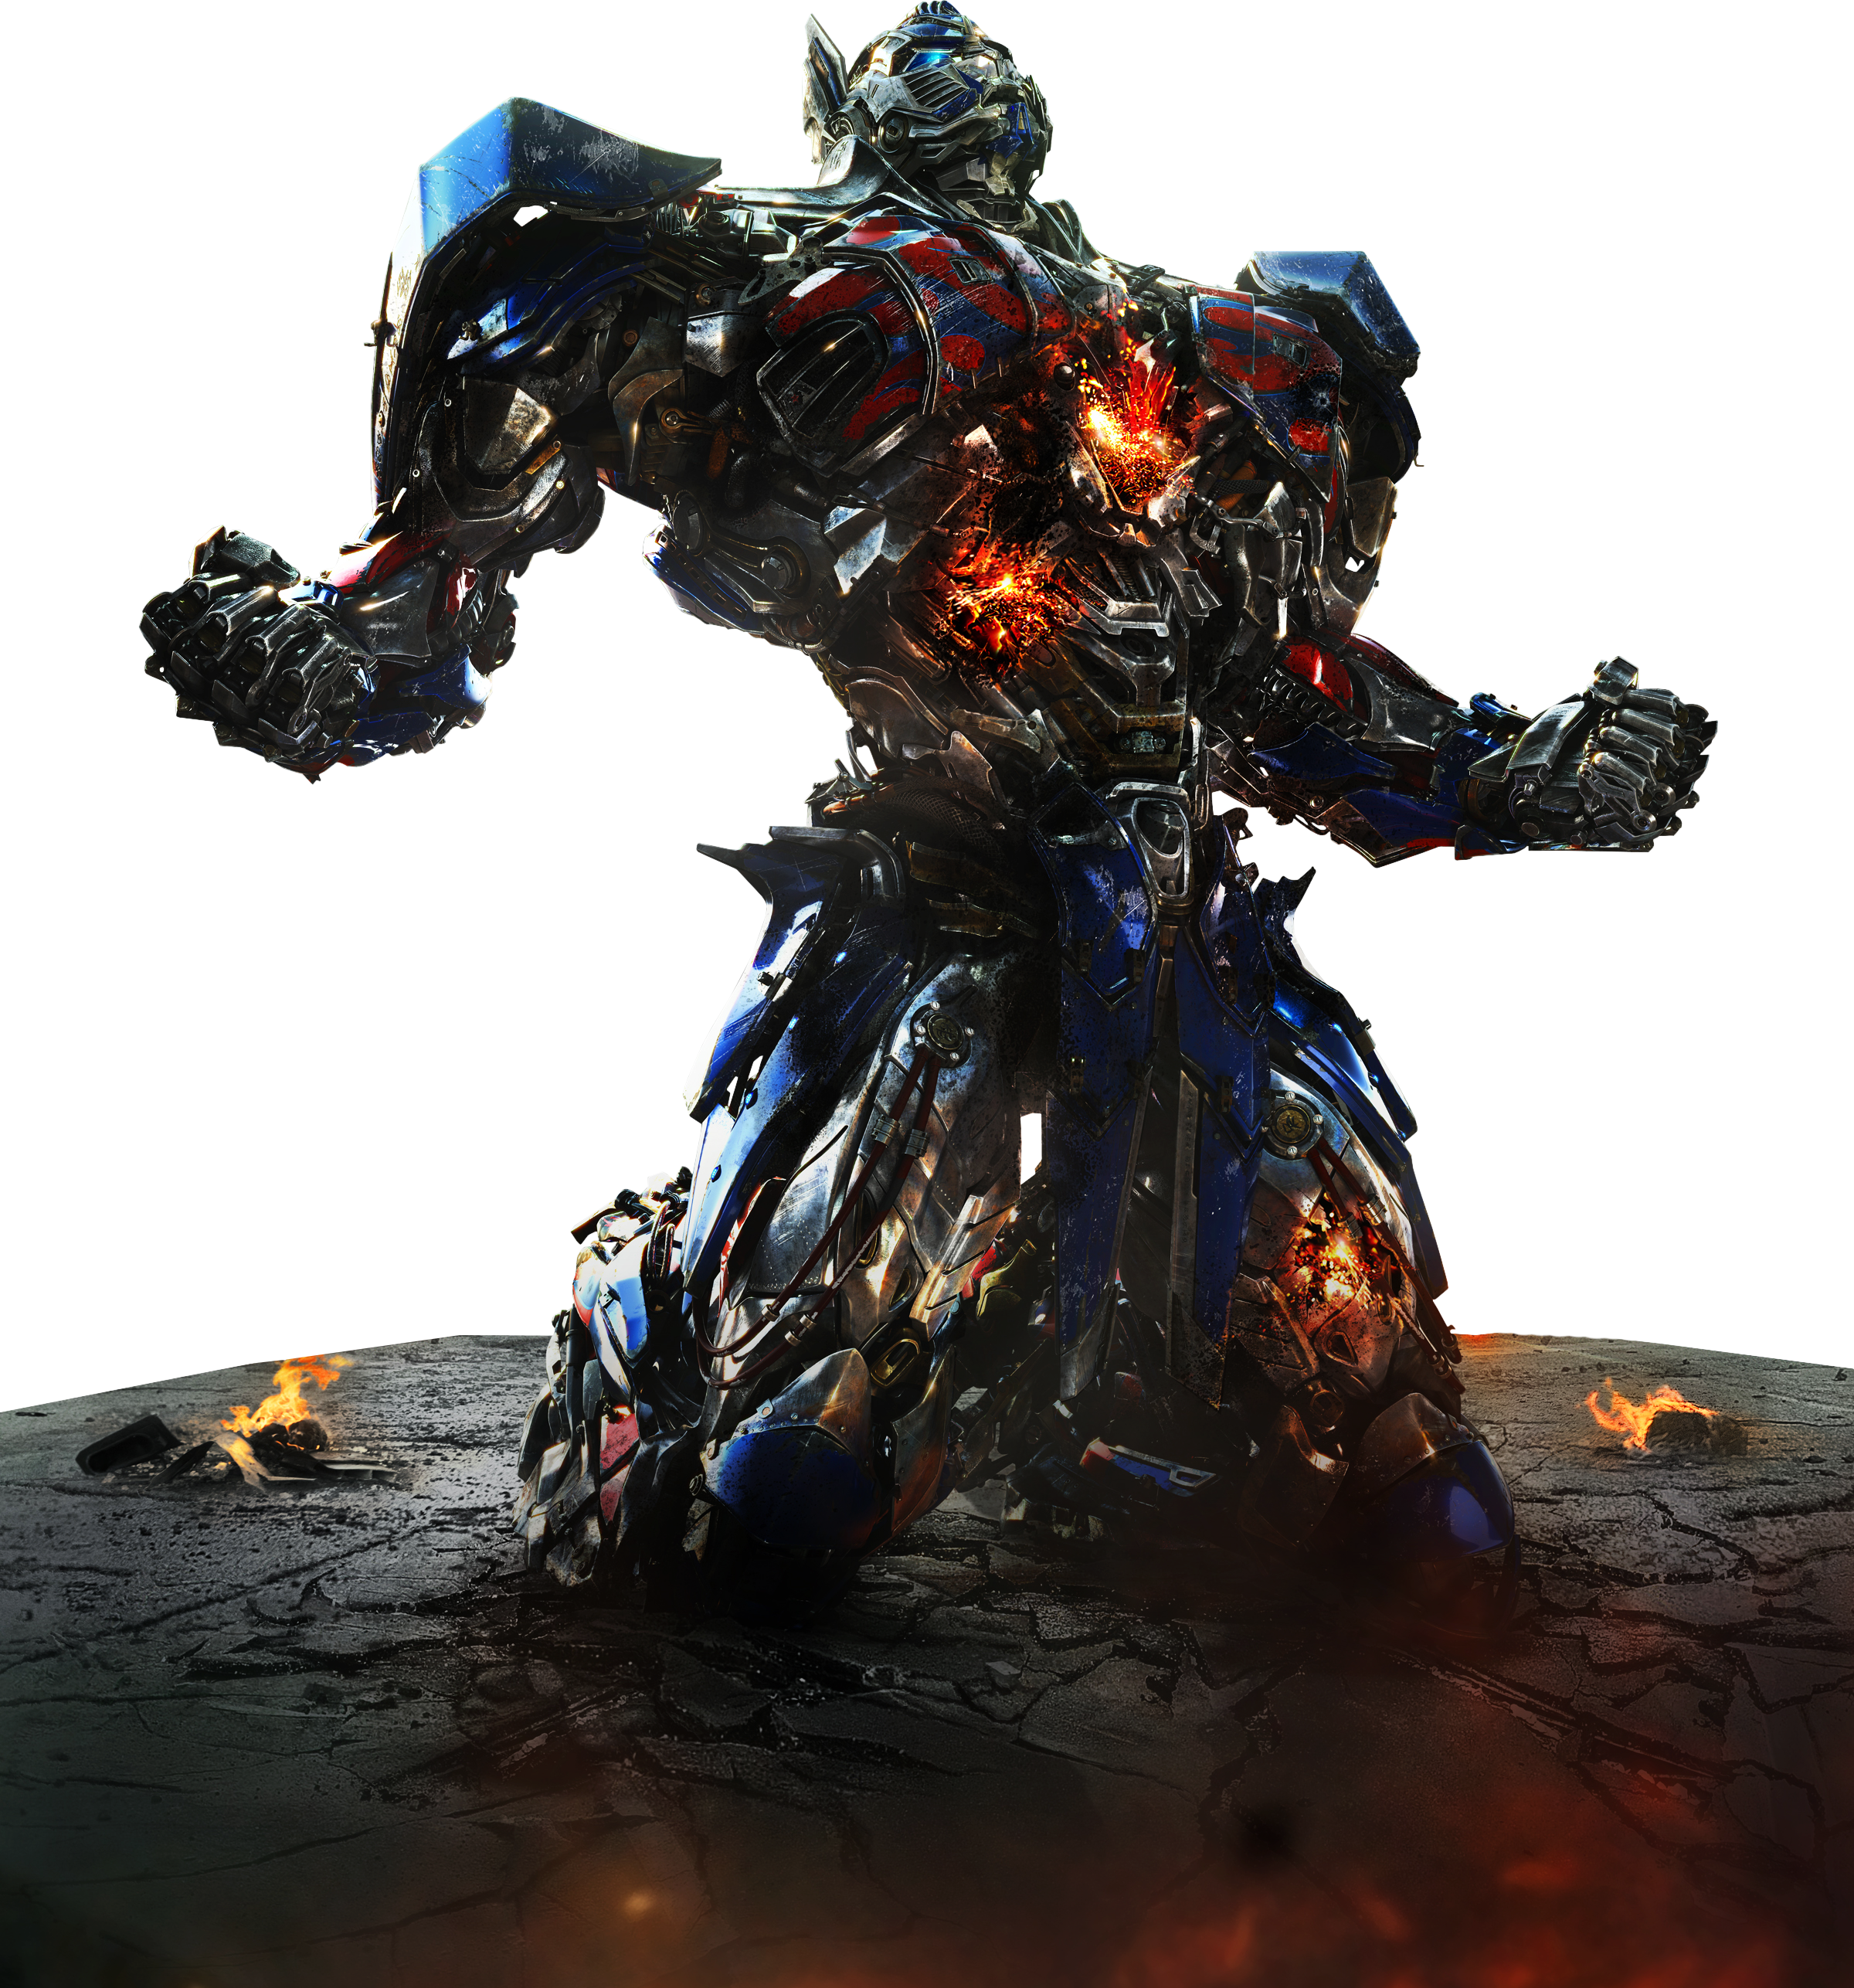 Optimus Prime Transformers Age Of Extinction by sachso74 on DeviantArt